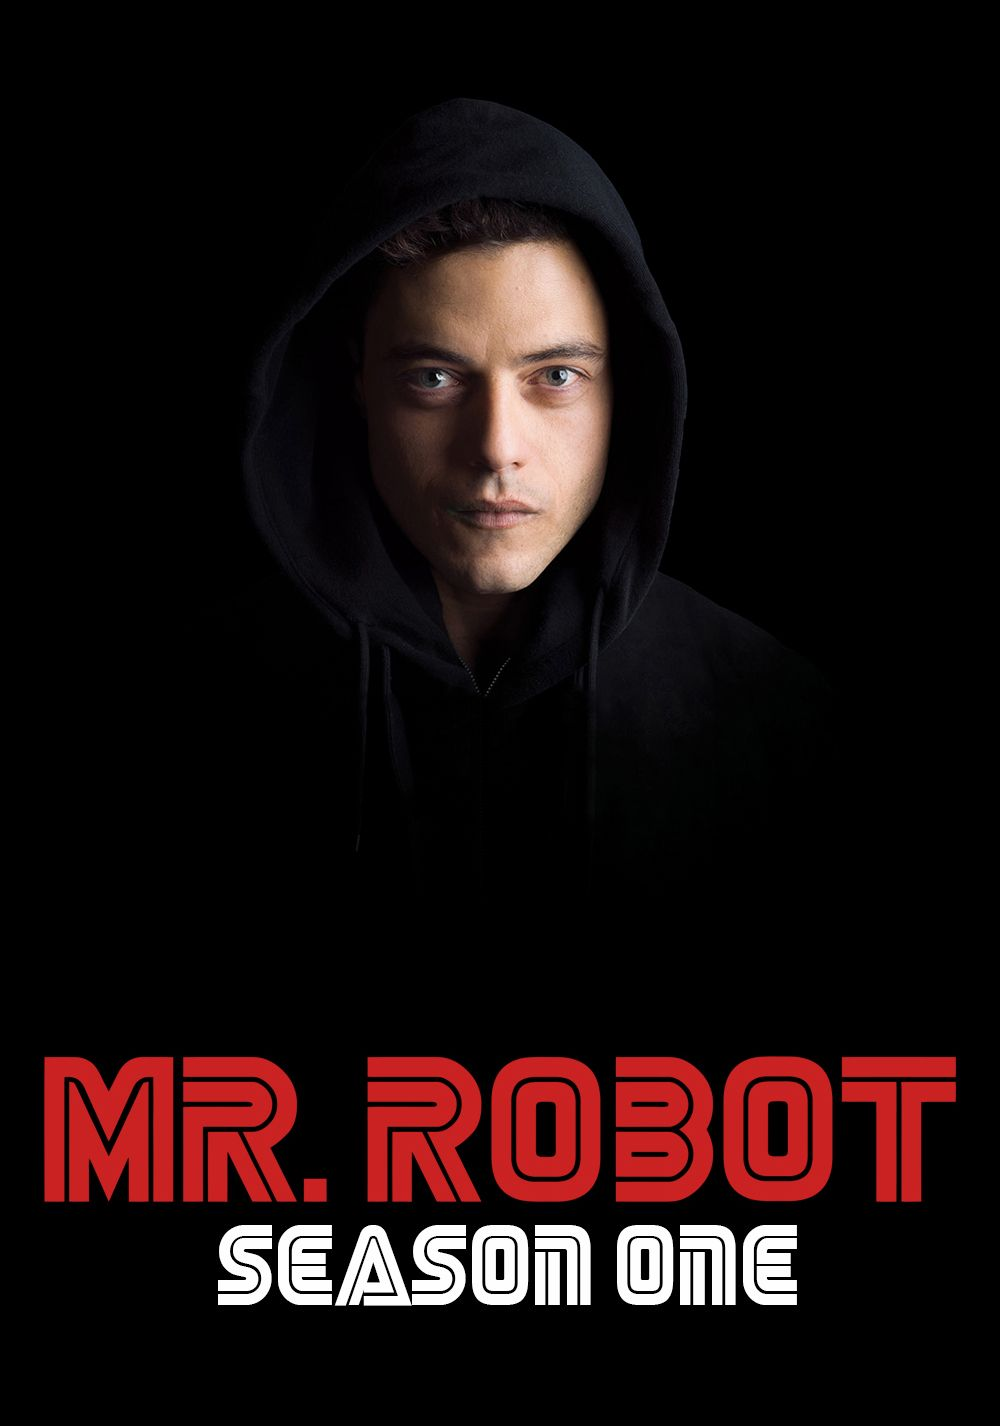 Mr Robot TV Series Poster